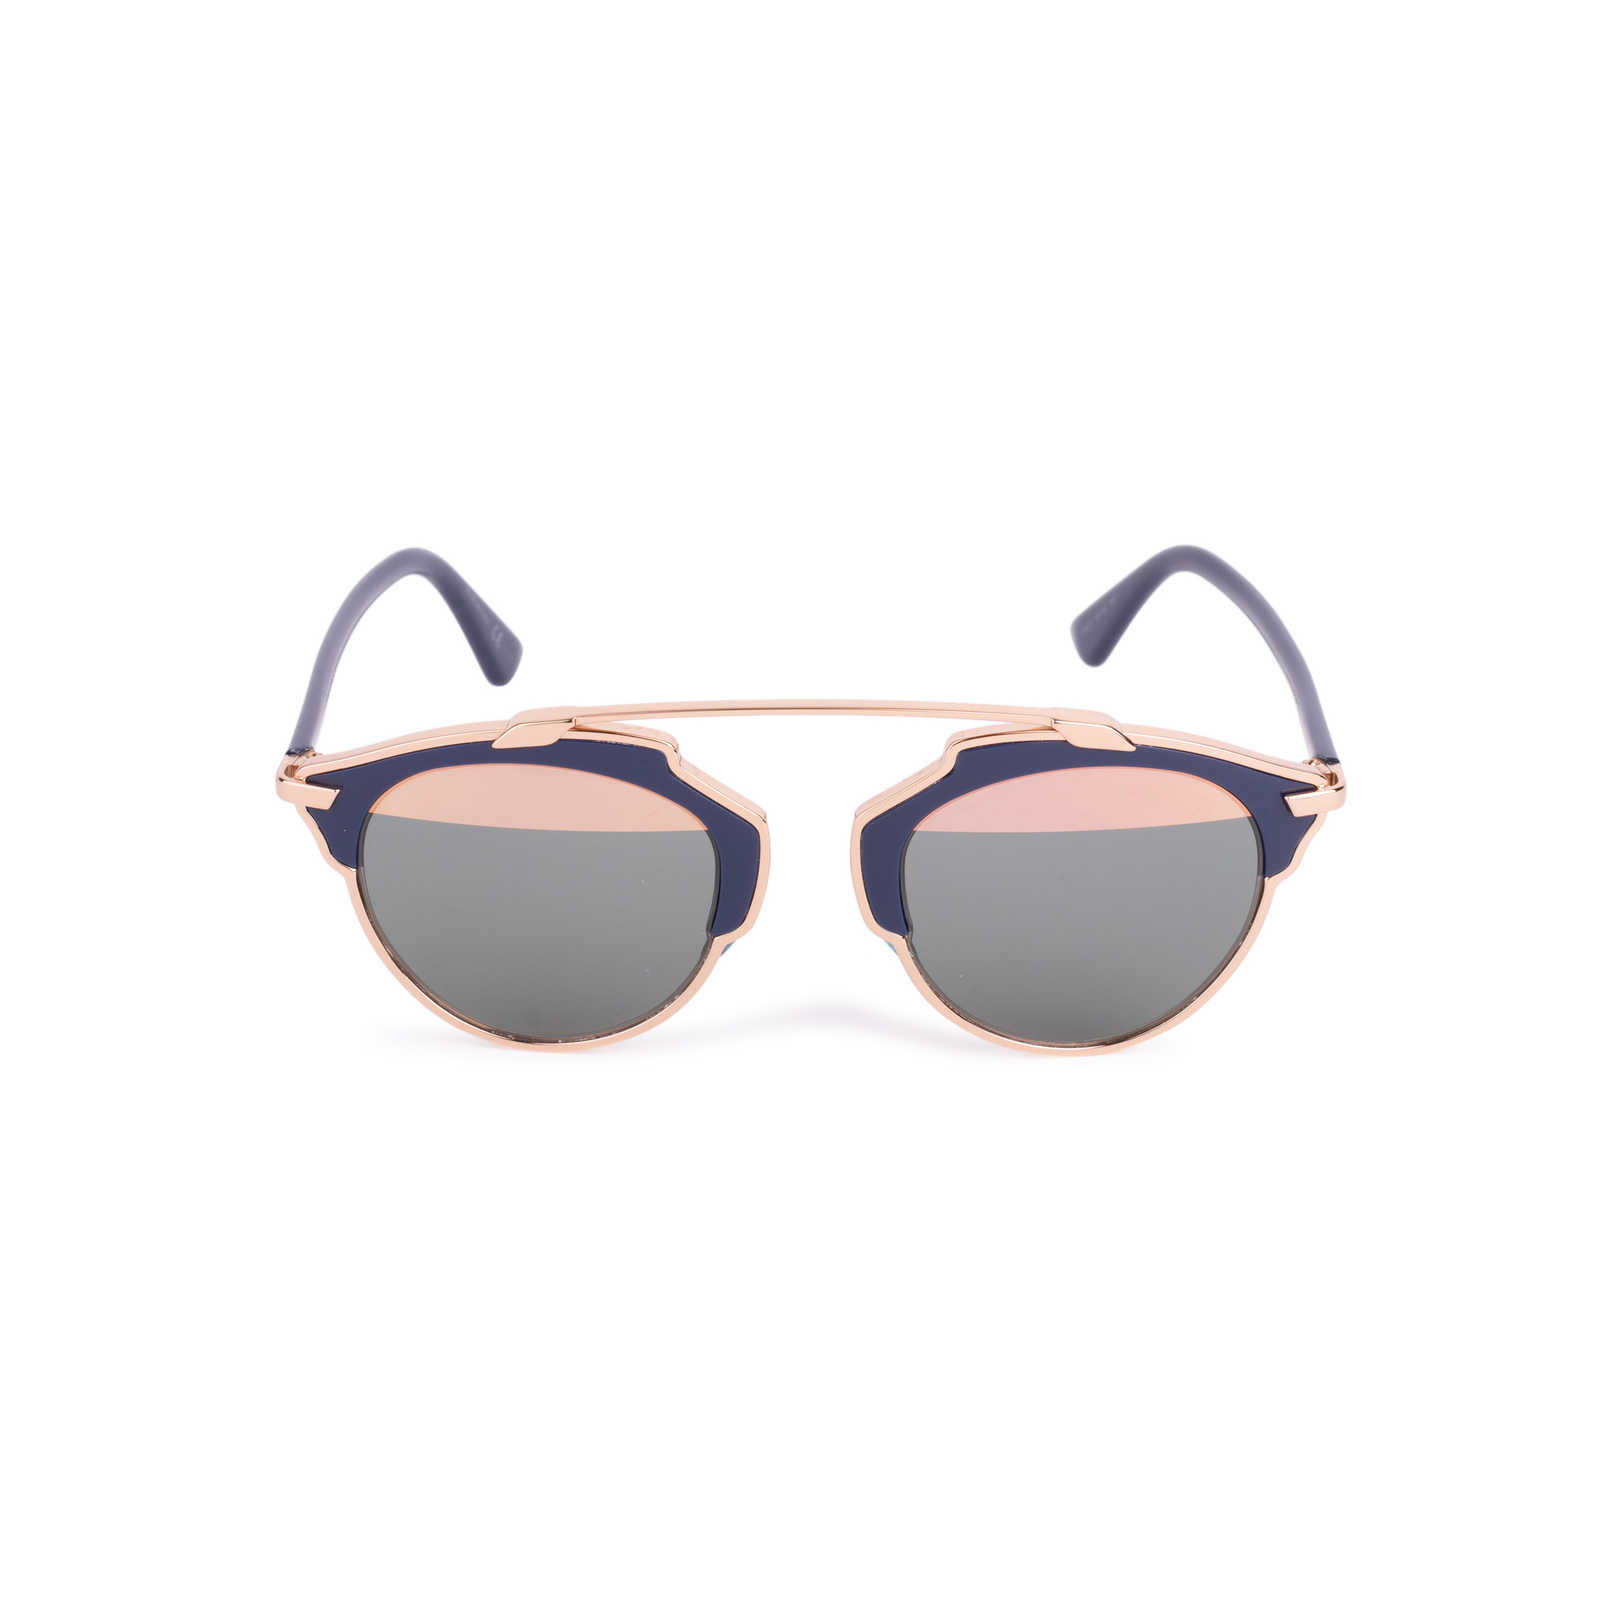 d806f6087d37 ... Authentic Second Hand Christian Dior So Real Sunglasses (PSS-584-00006)  ...